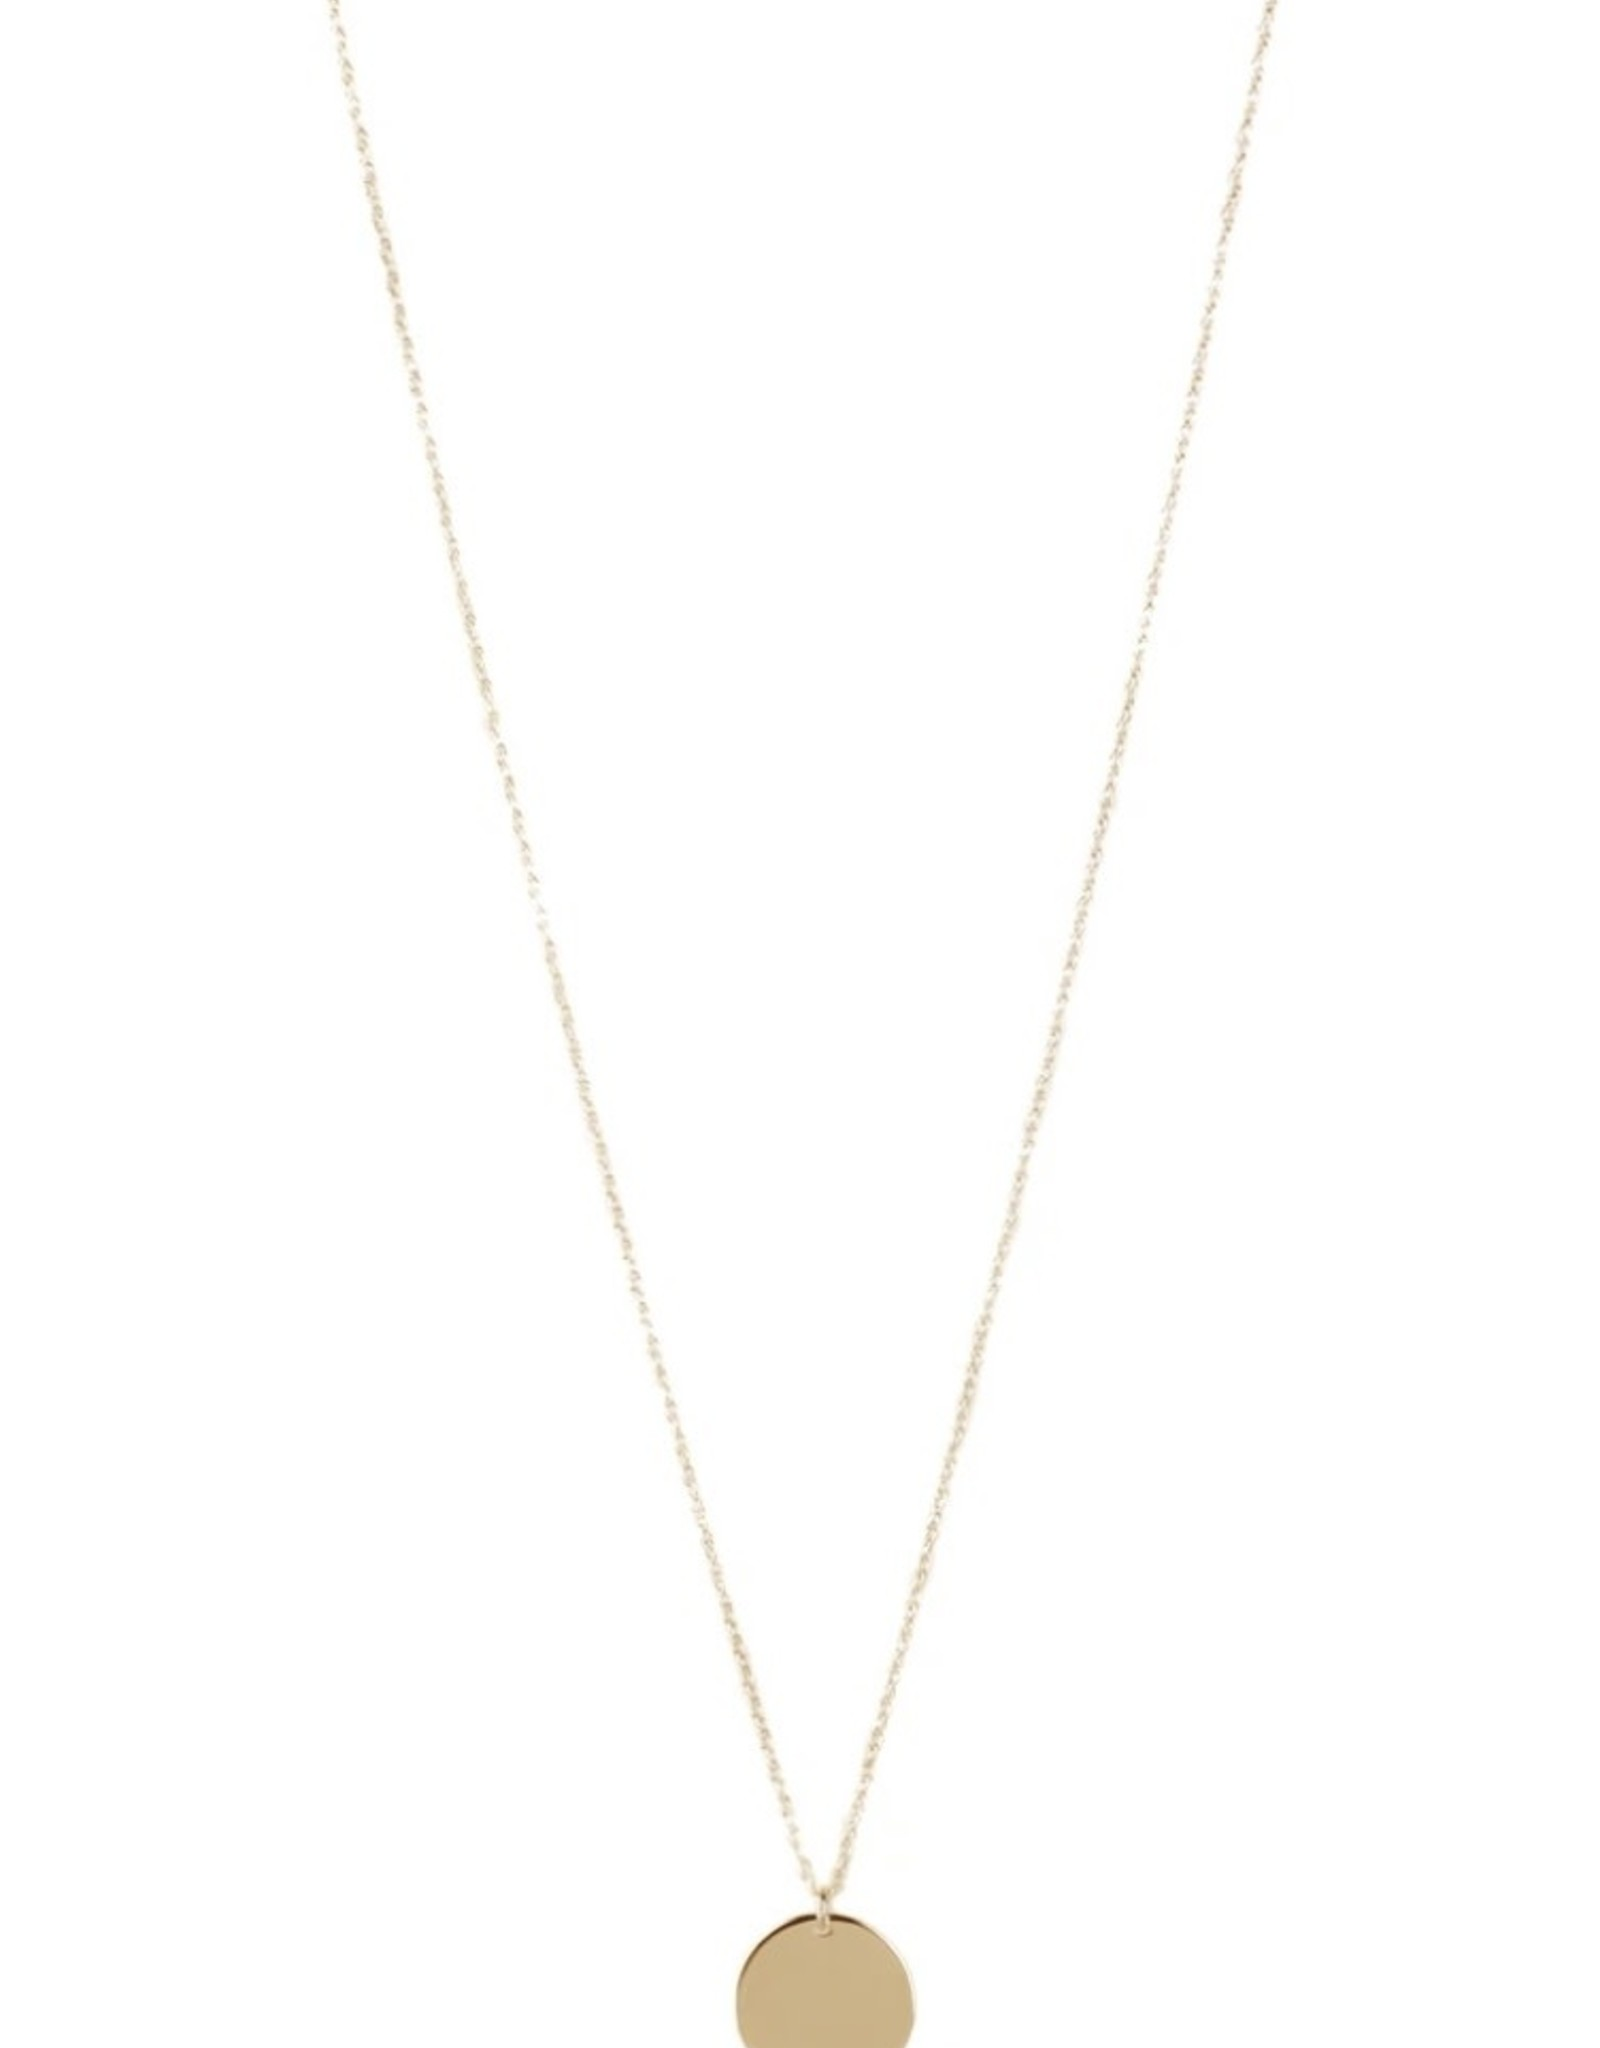 Lisbeth Eva Chain, 14K Gold Filled